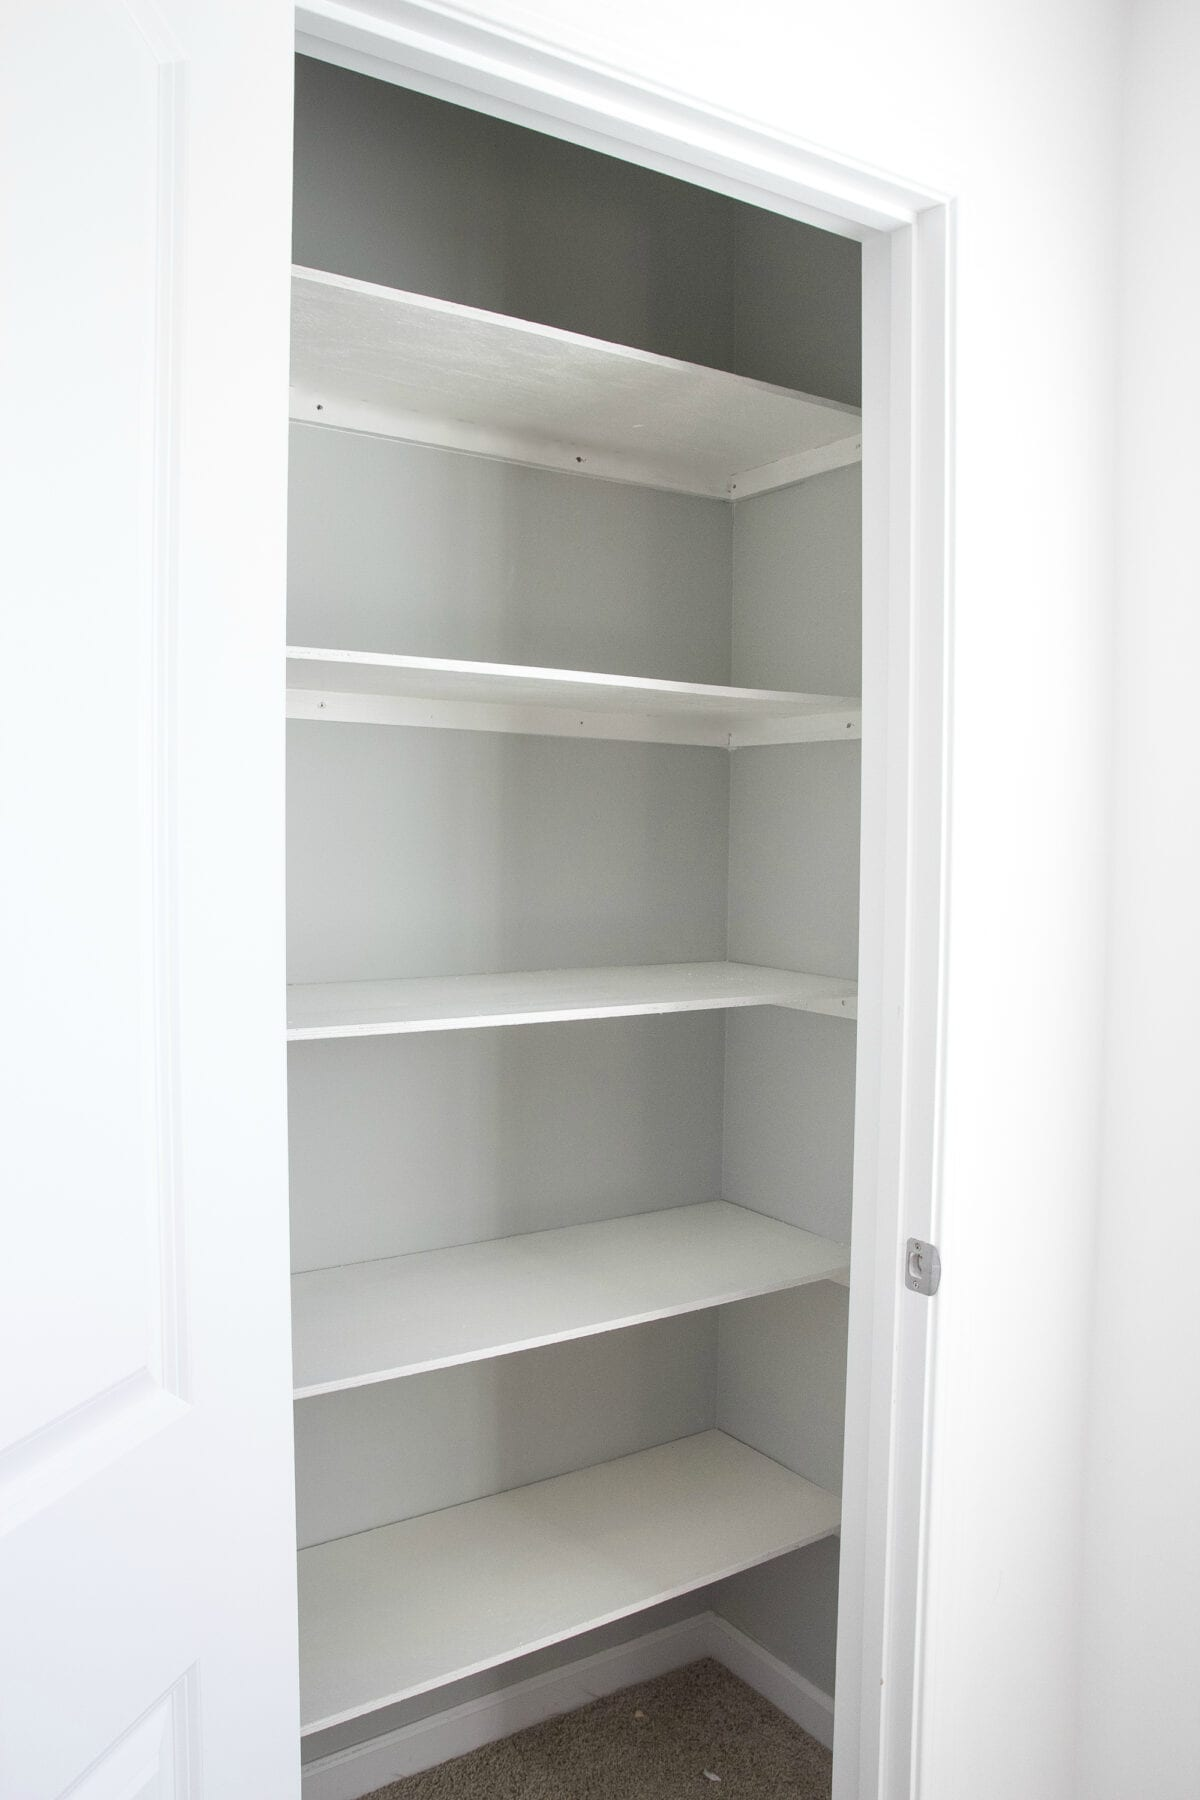 Basic DIY Closet Shelving